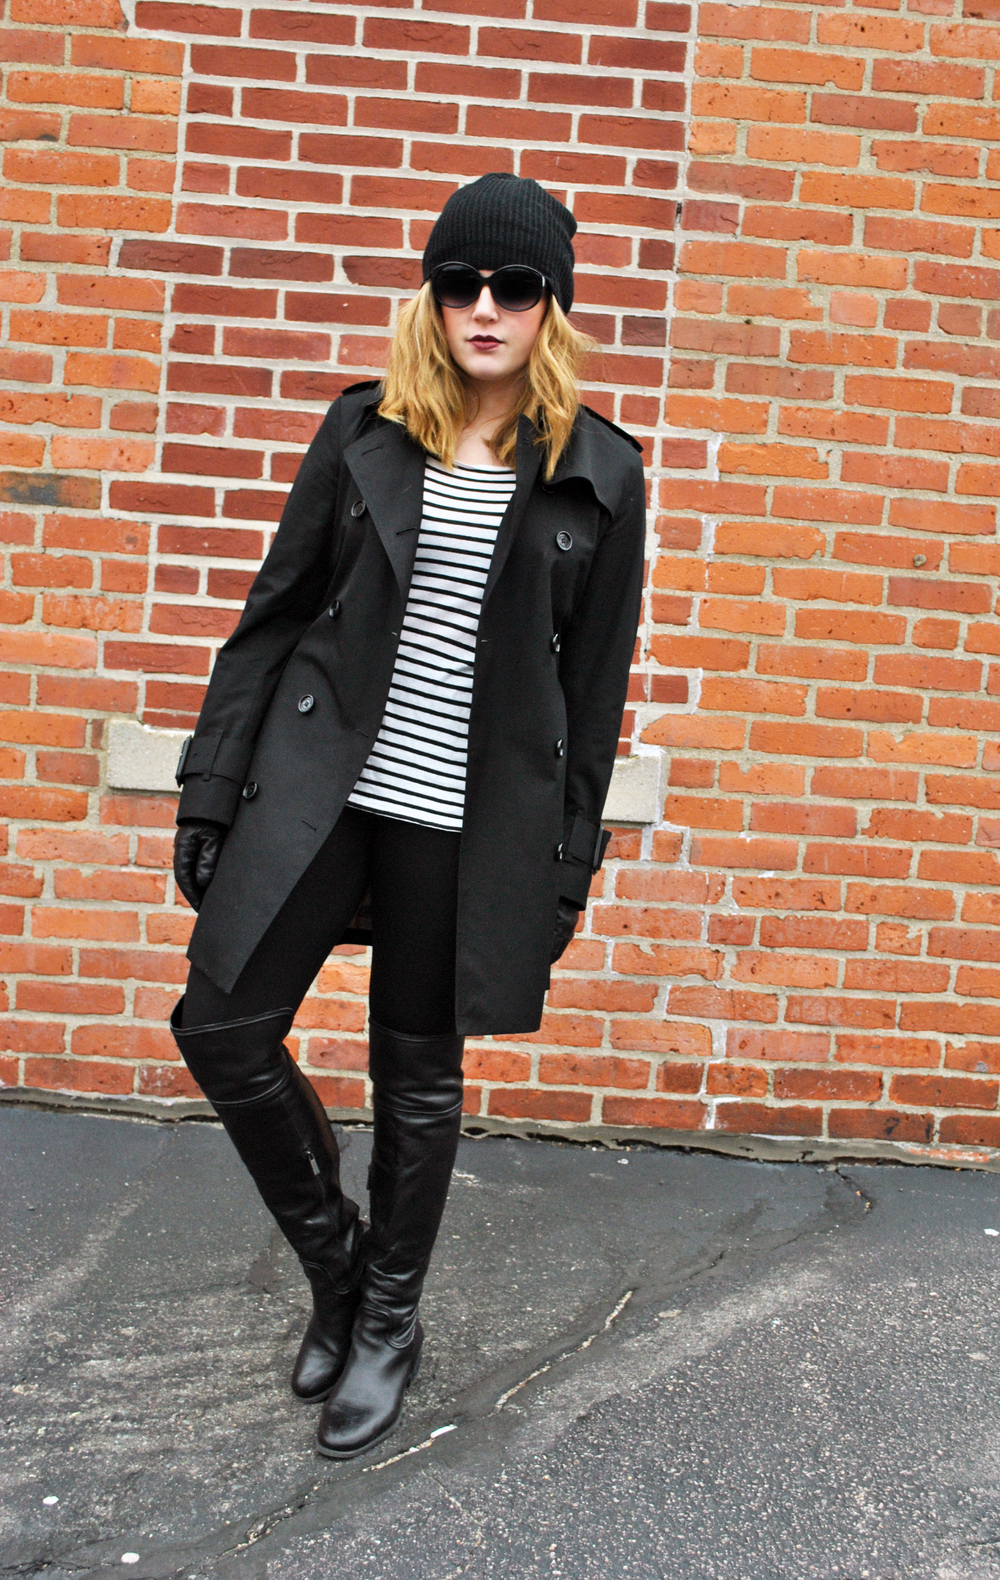 Black trench with stripes and leather | thoughtfulwish